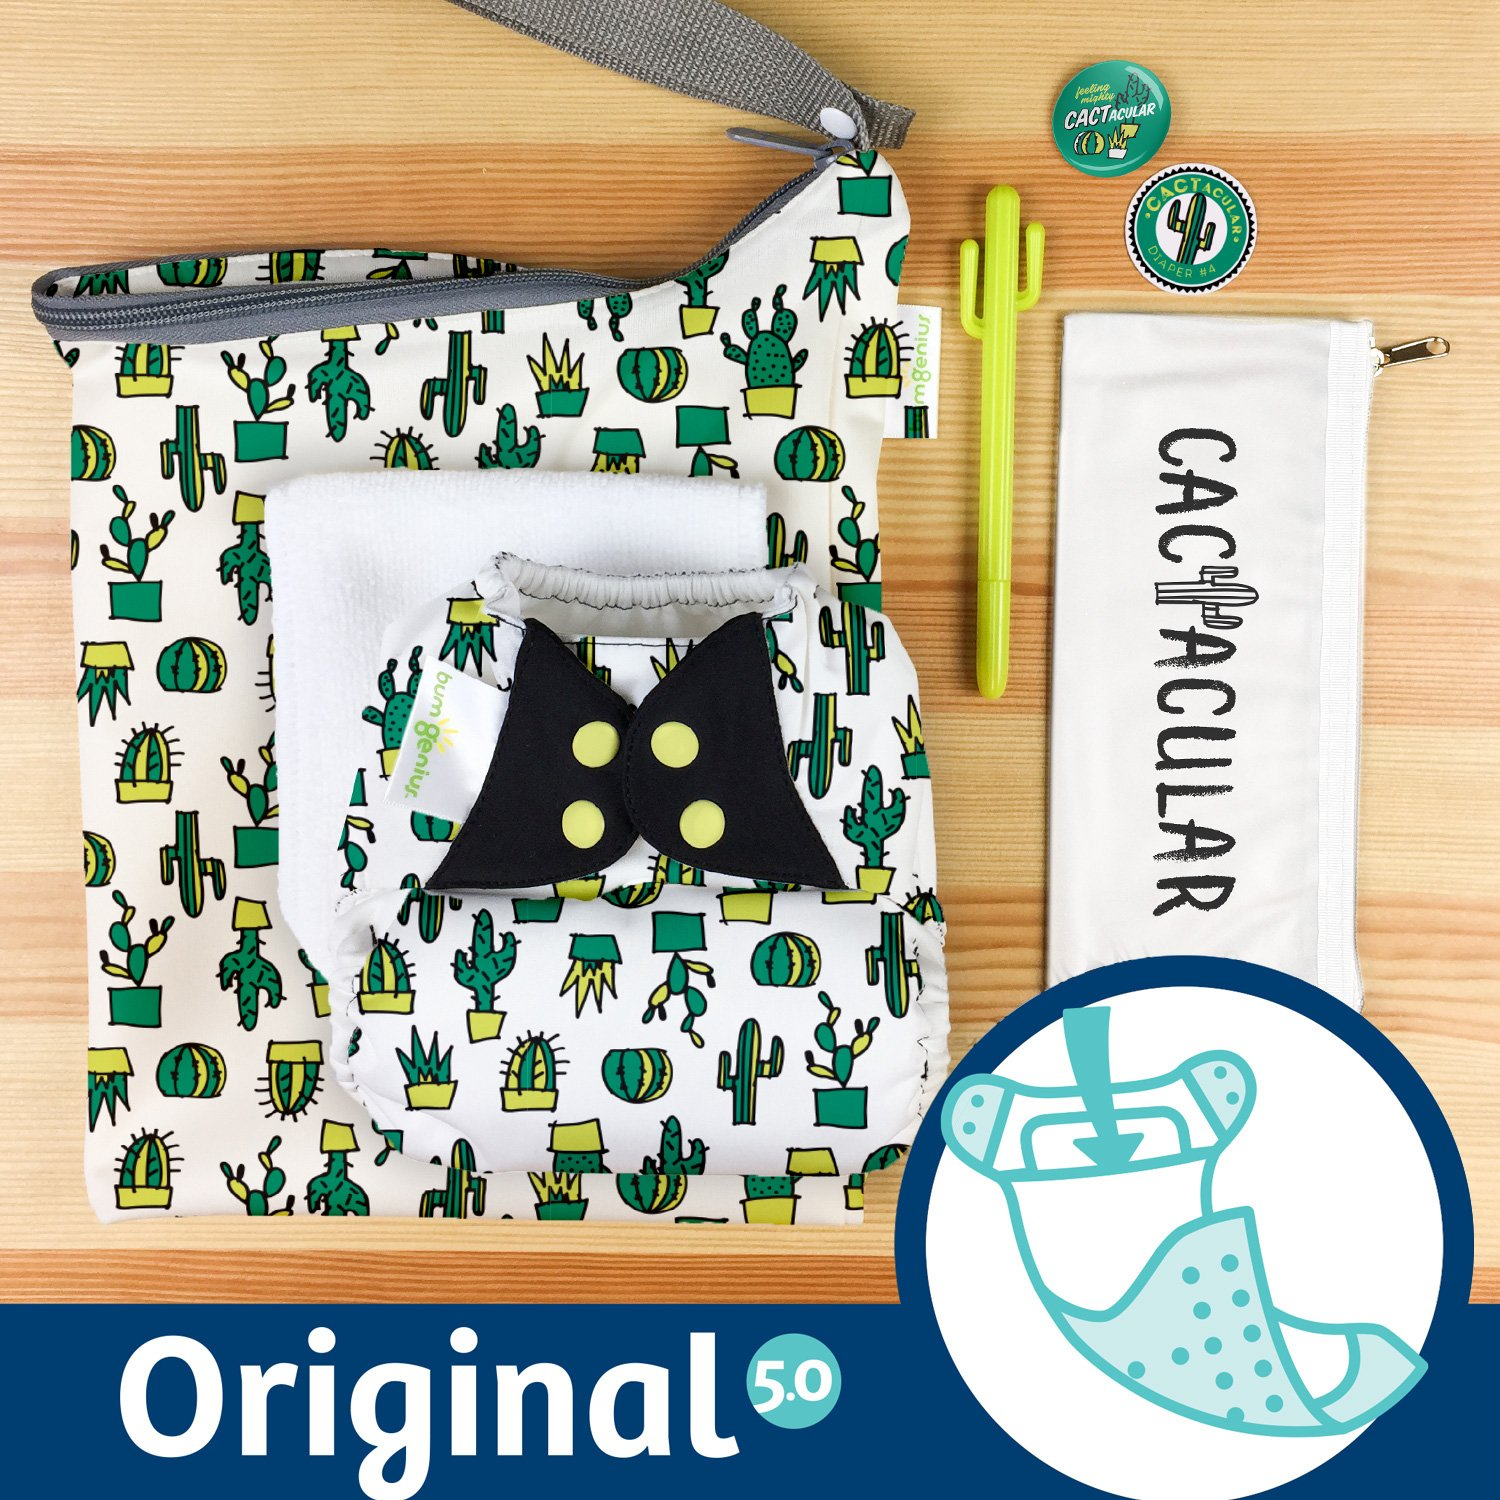 Doodles Collection: bumGenius Original One-Size Pocket-Style Cloth Diaper 5.0 (CACTacular